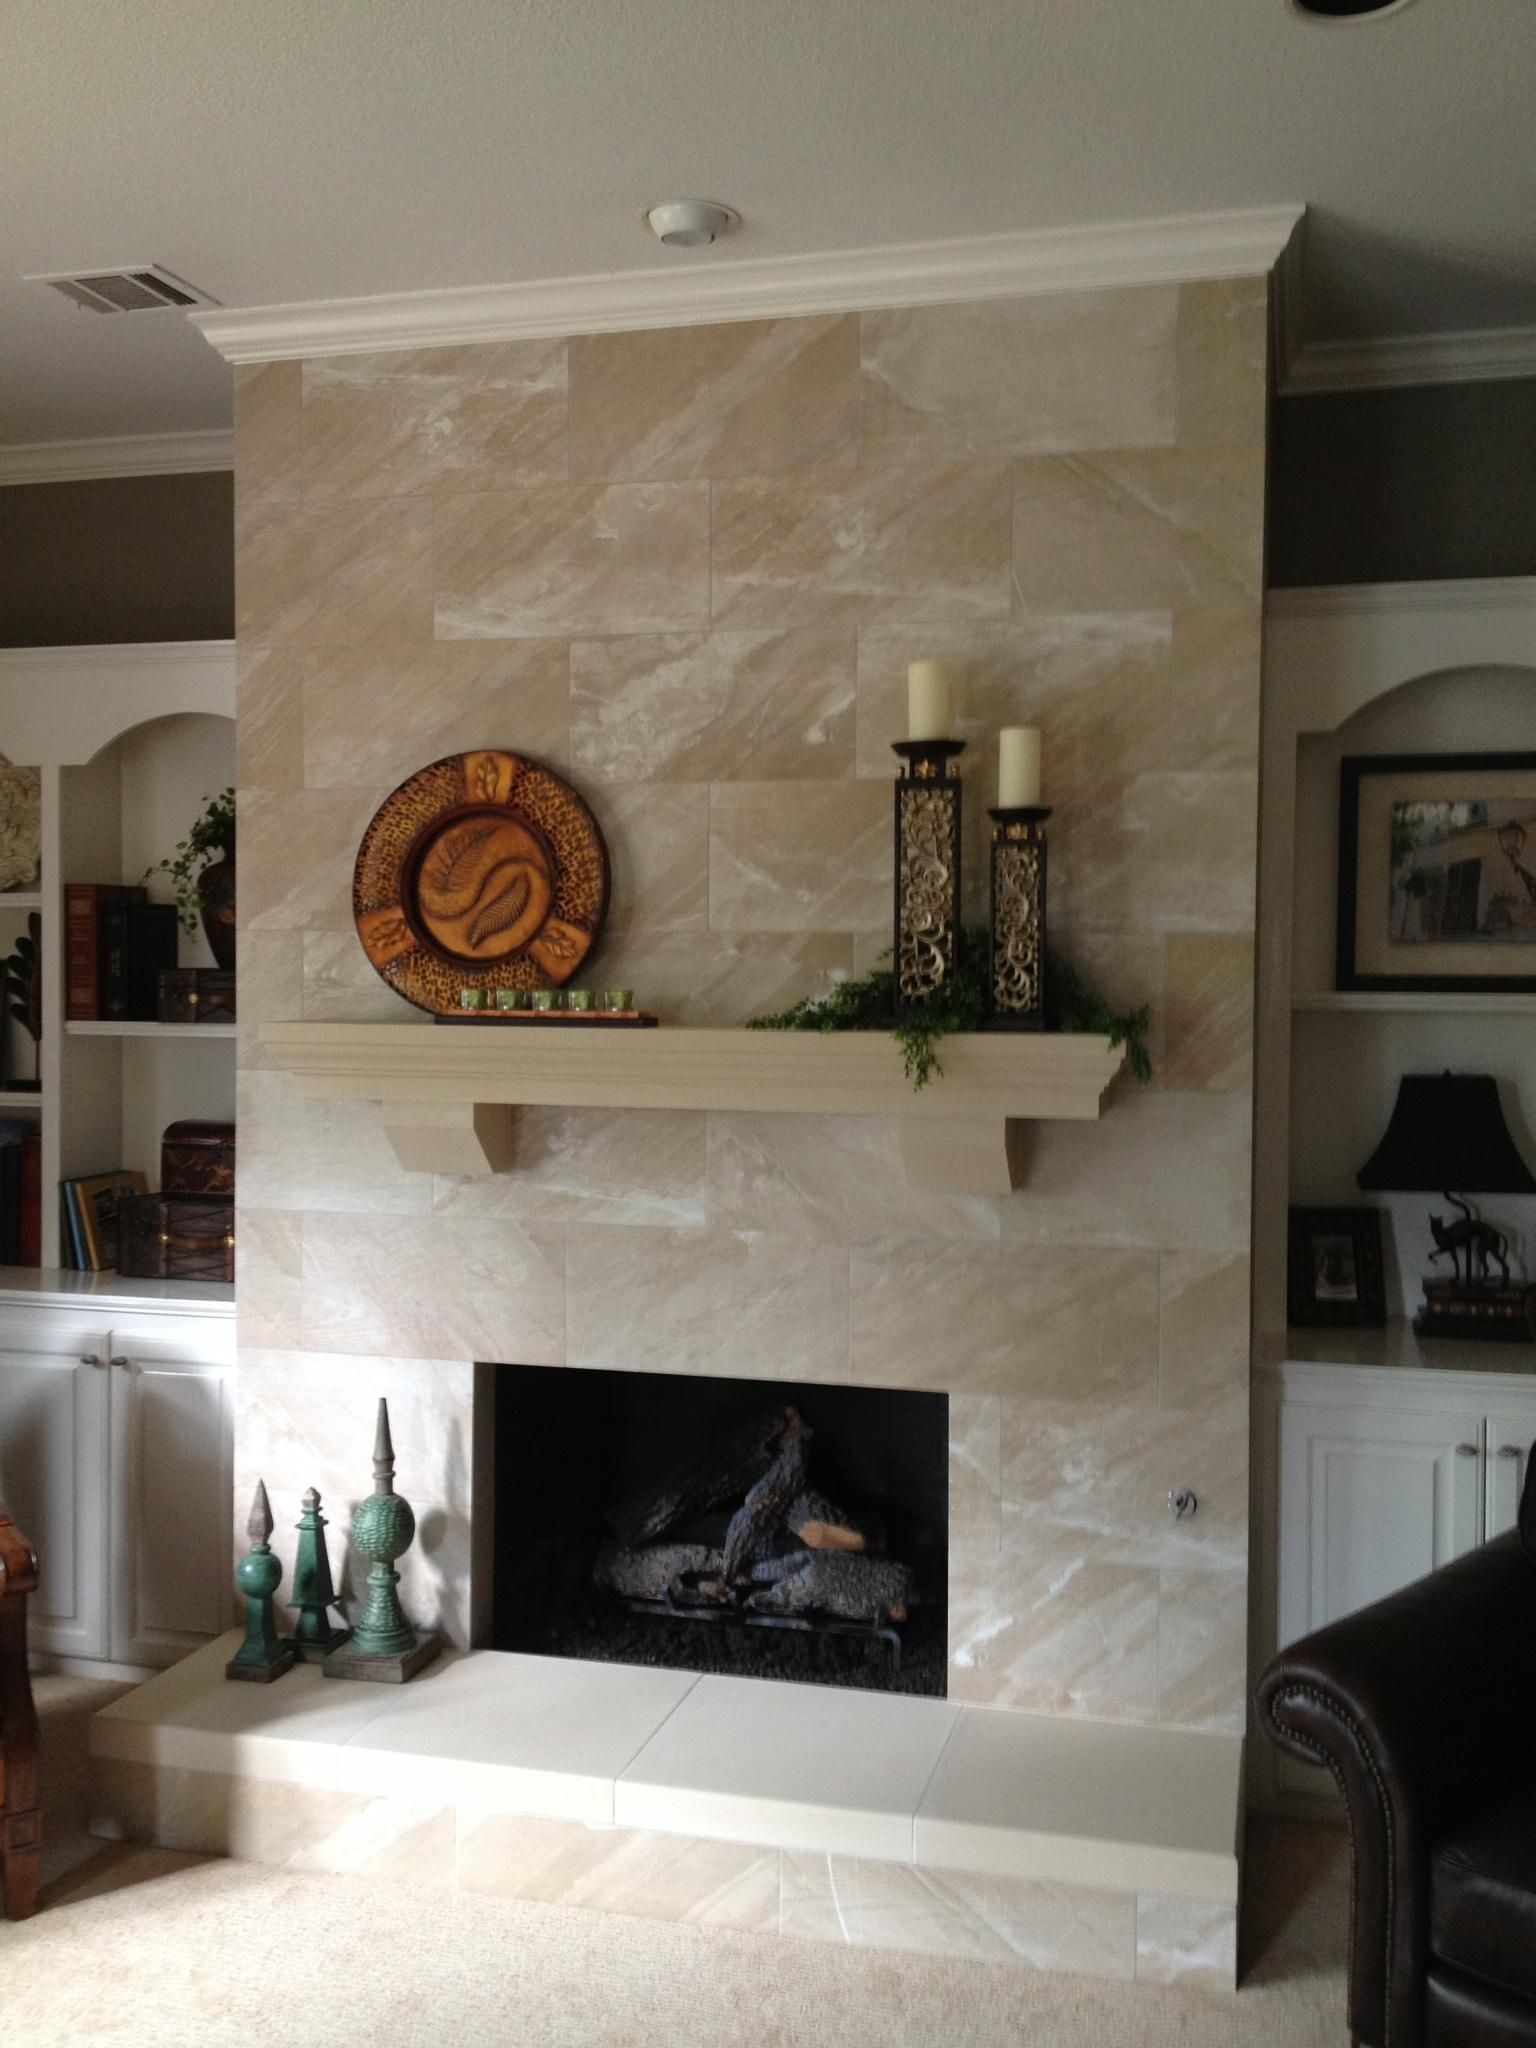 Fireplace Raised Hearth Ideas Download Fireplace Raised Hearth Fireplace Hearth Fireplace Makeover Fireplace Download fireplace living room